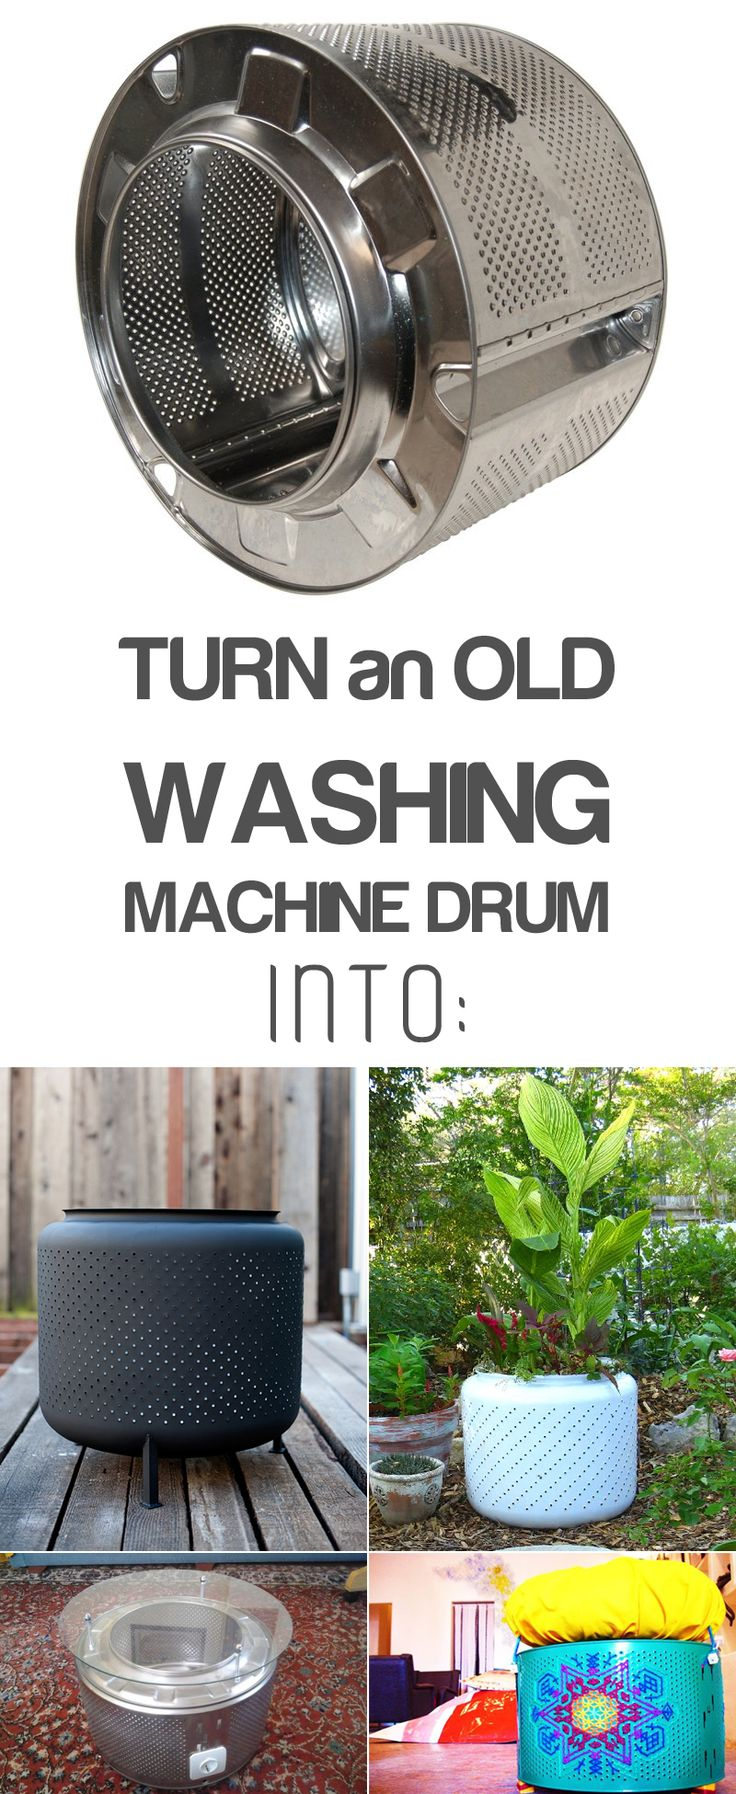 12 Creative Ways to Recycle Washing Machine Drums - New uses for a broken washing machine drums.